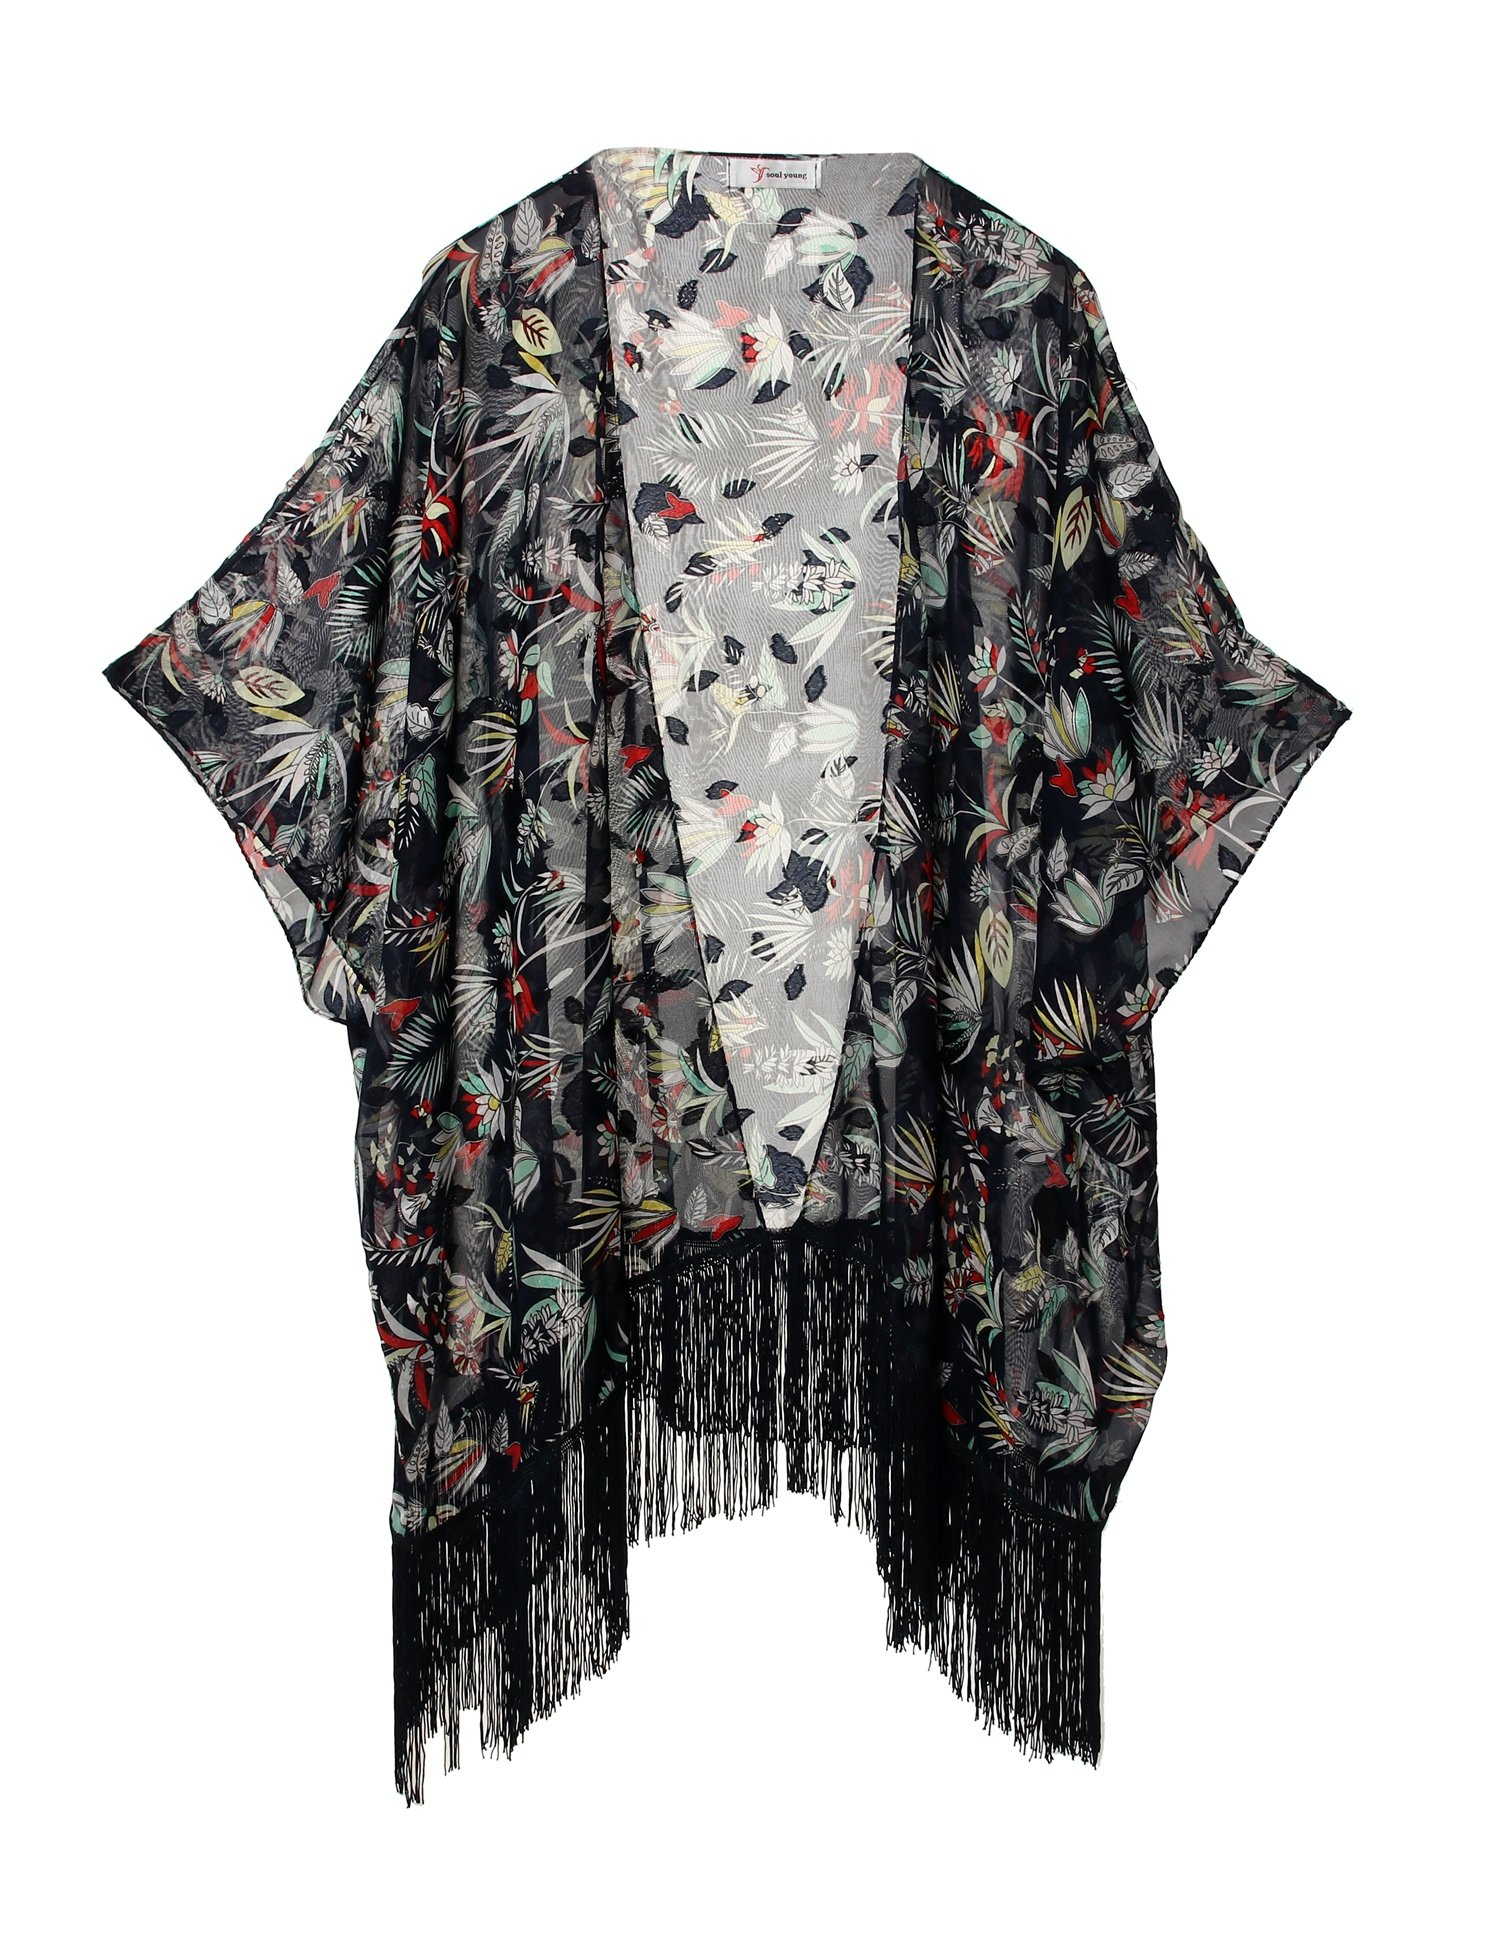 Women's Floral Kimono Cover Up - Lightweight Jacquard Chiffon Beachwear for Bikini,Cardigan and Swimwear (one size, Navy)